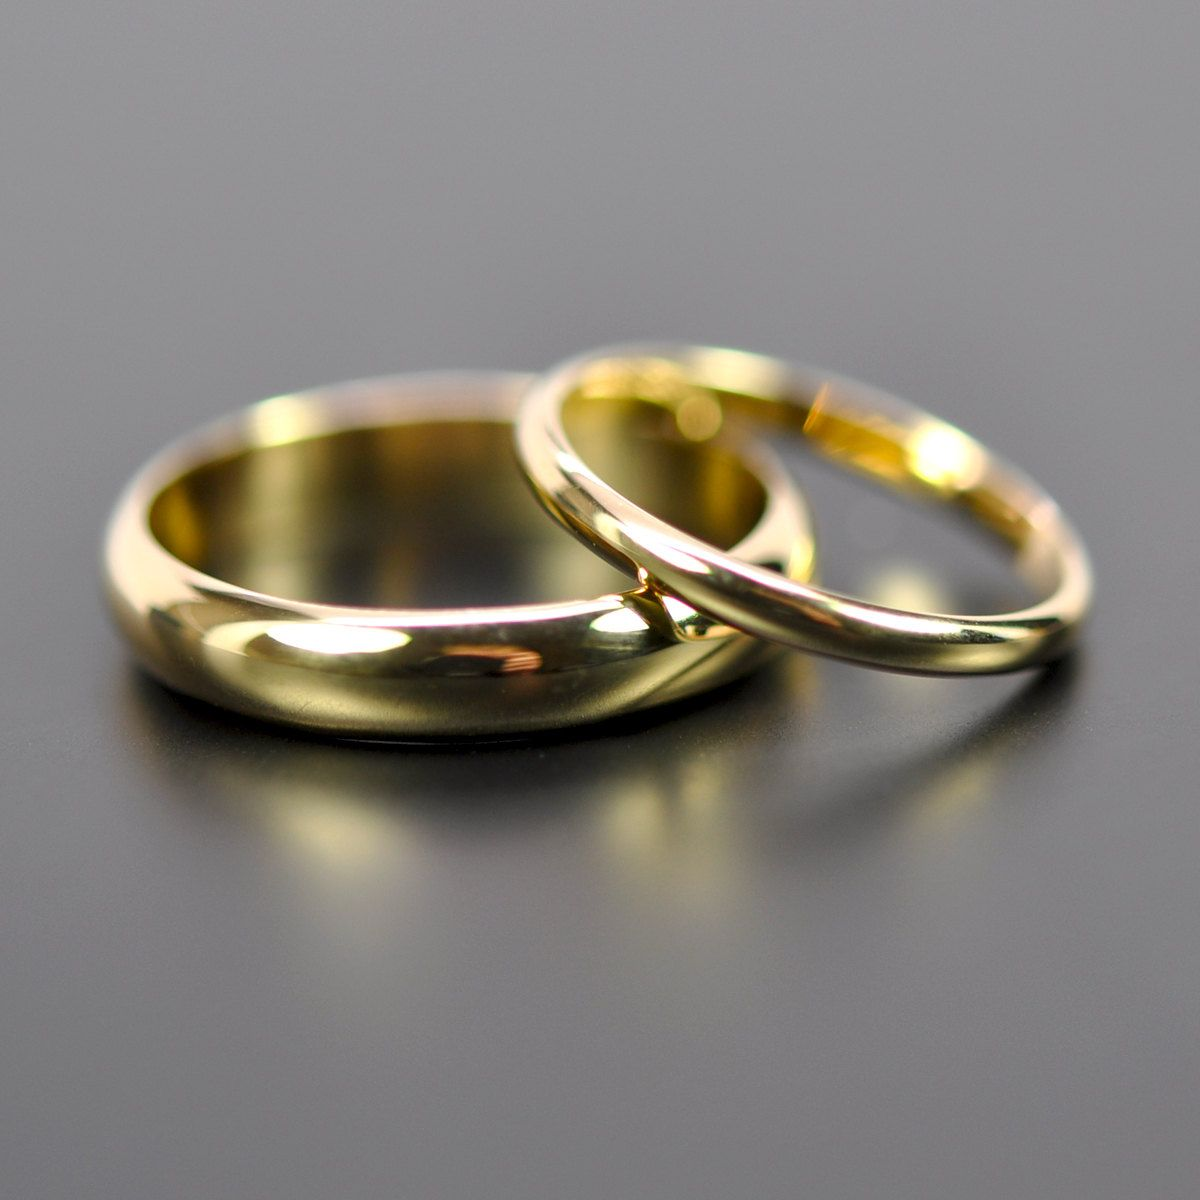 18k Yellow Gold Classic Wedding Band Set His And Hers Rings 2mm